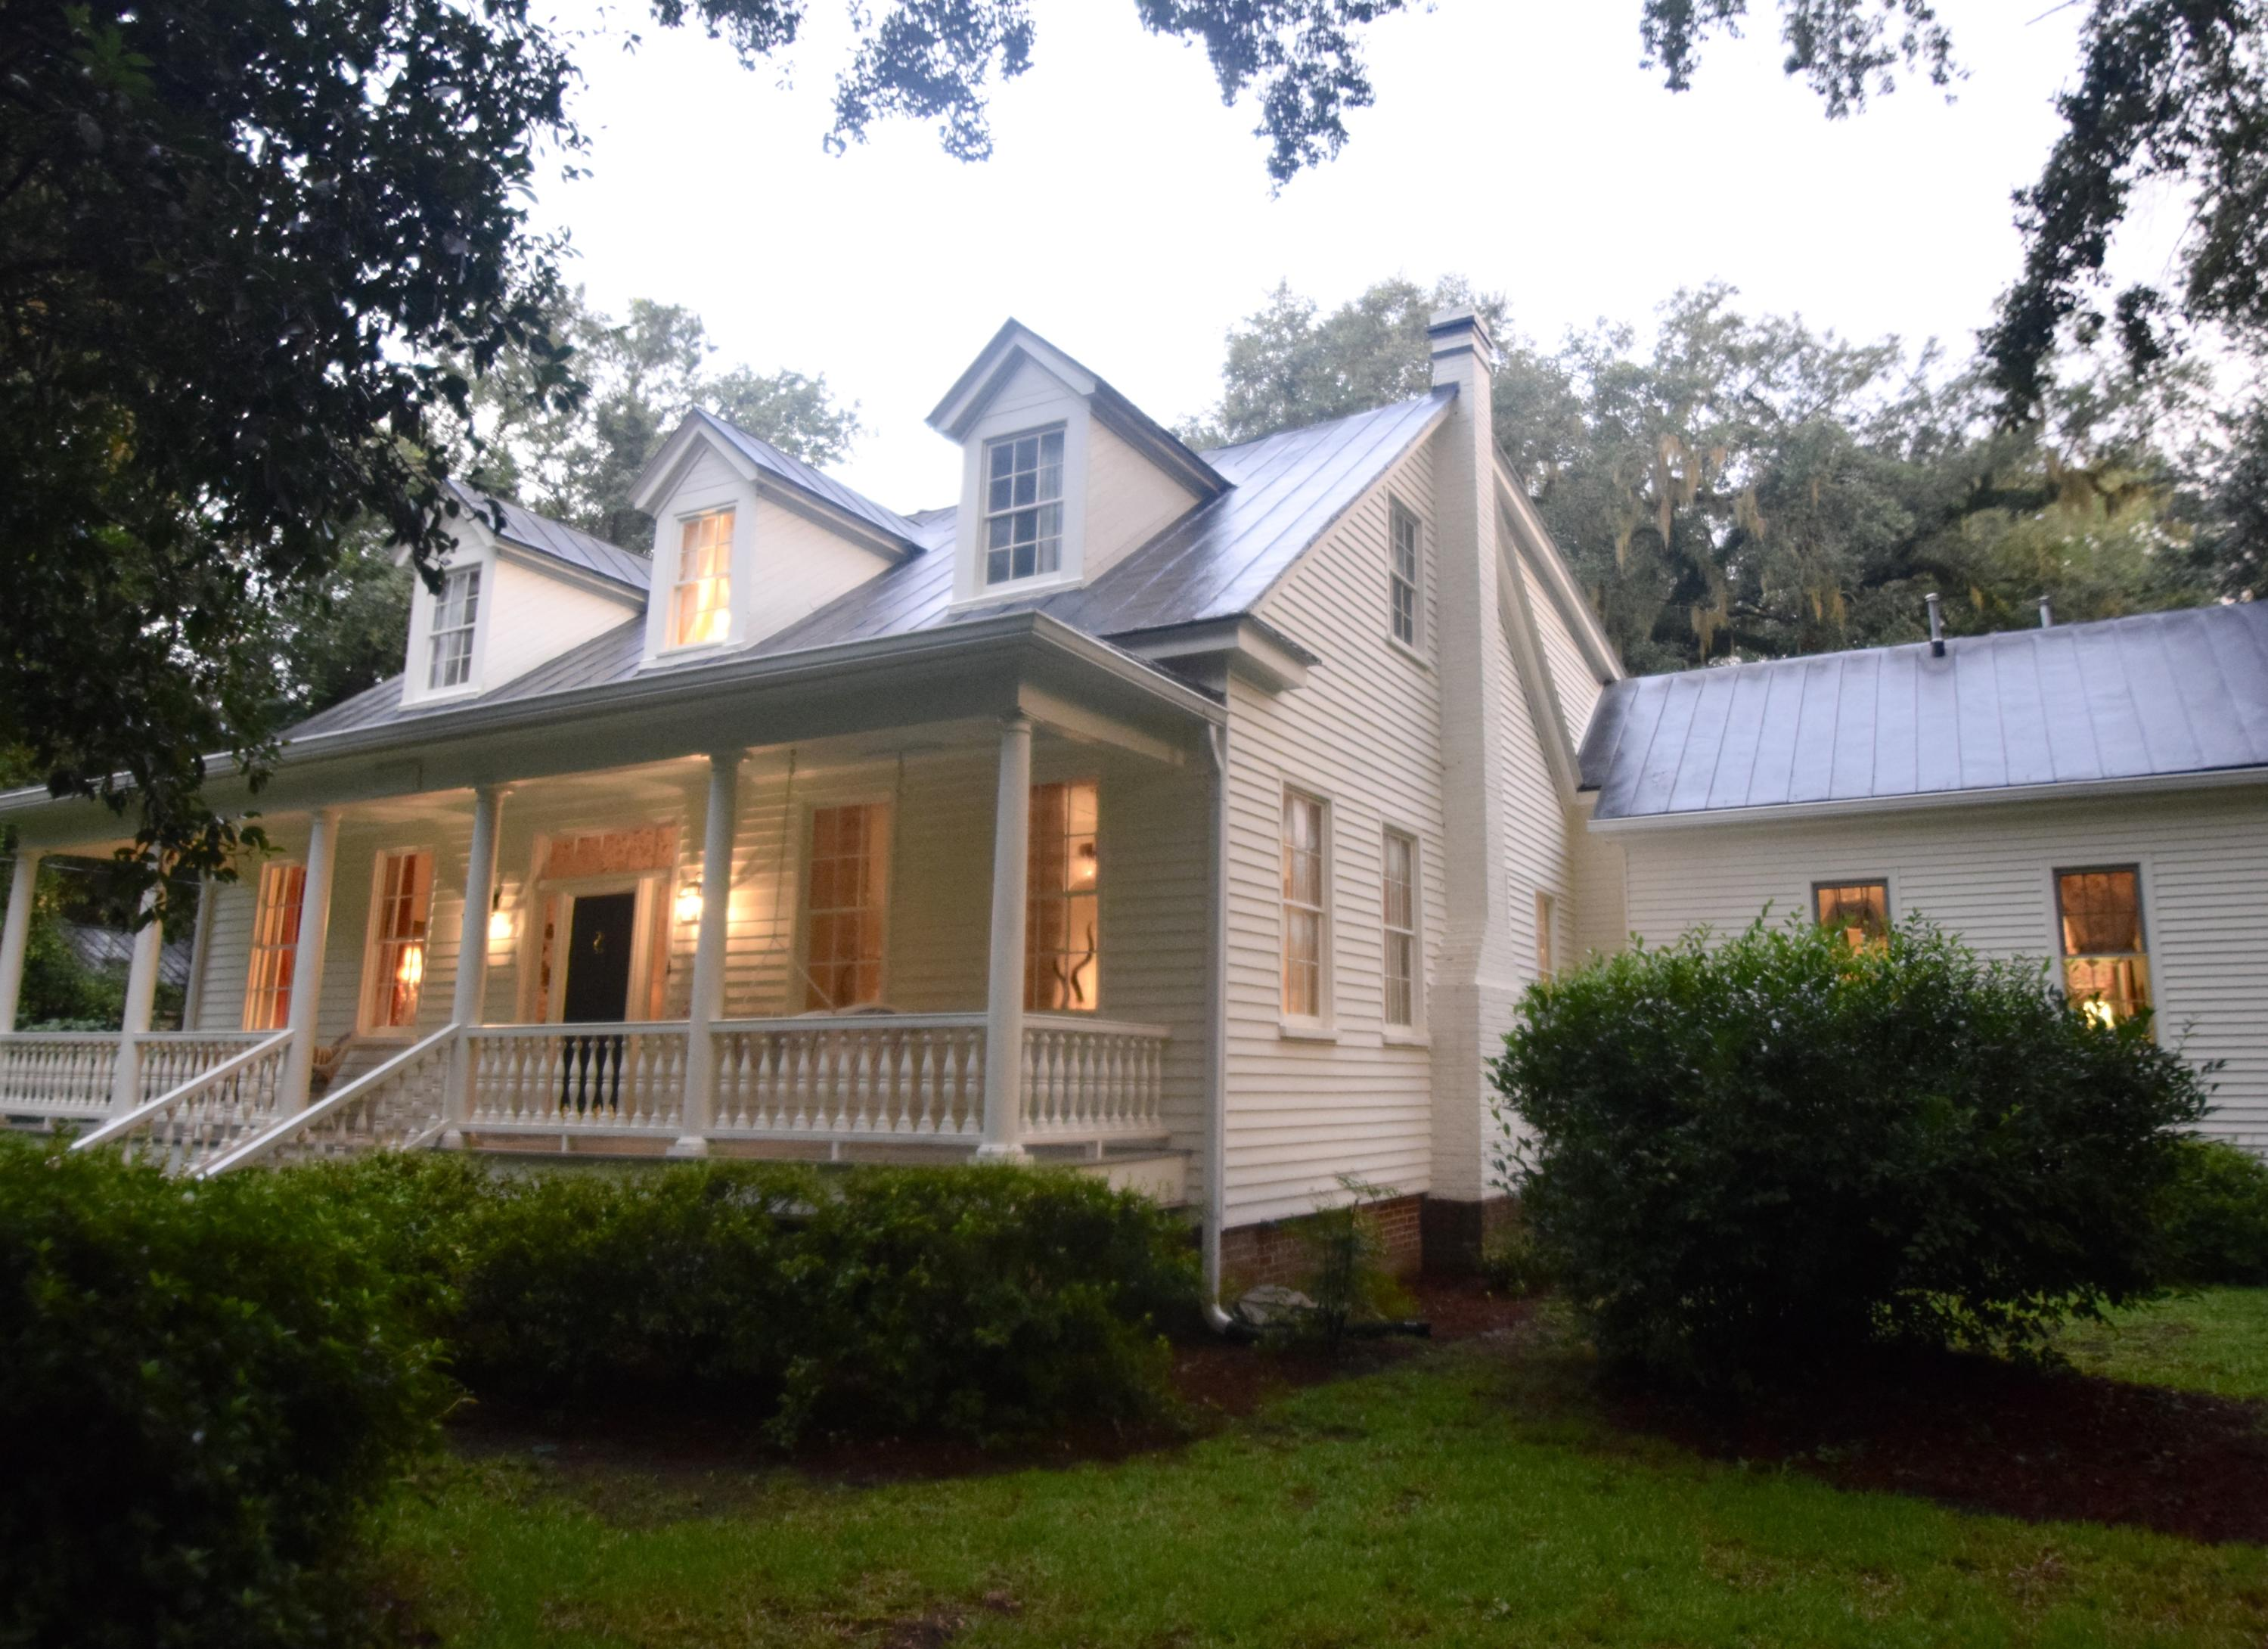 Historic District Homes For Sale - 115 Briarwood, Summerville, SC - 1